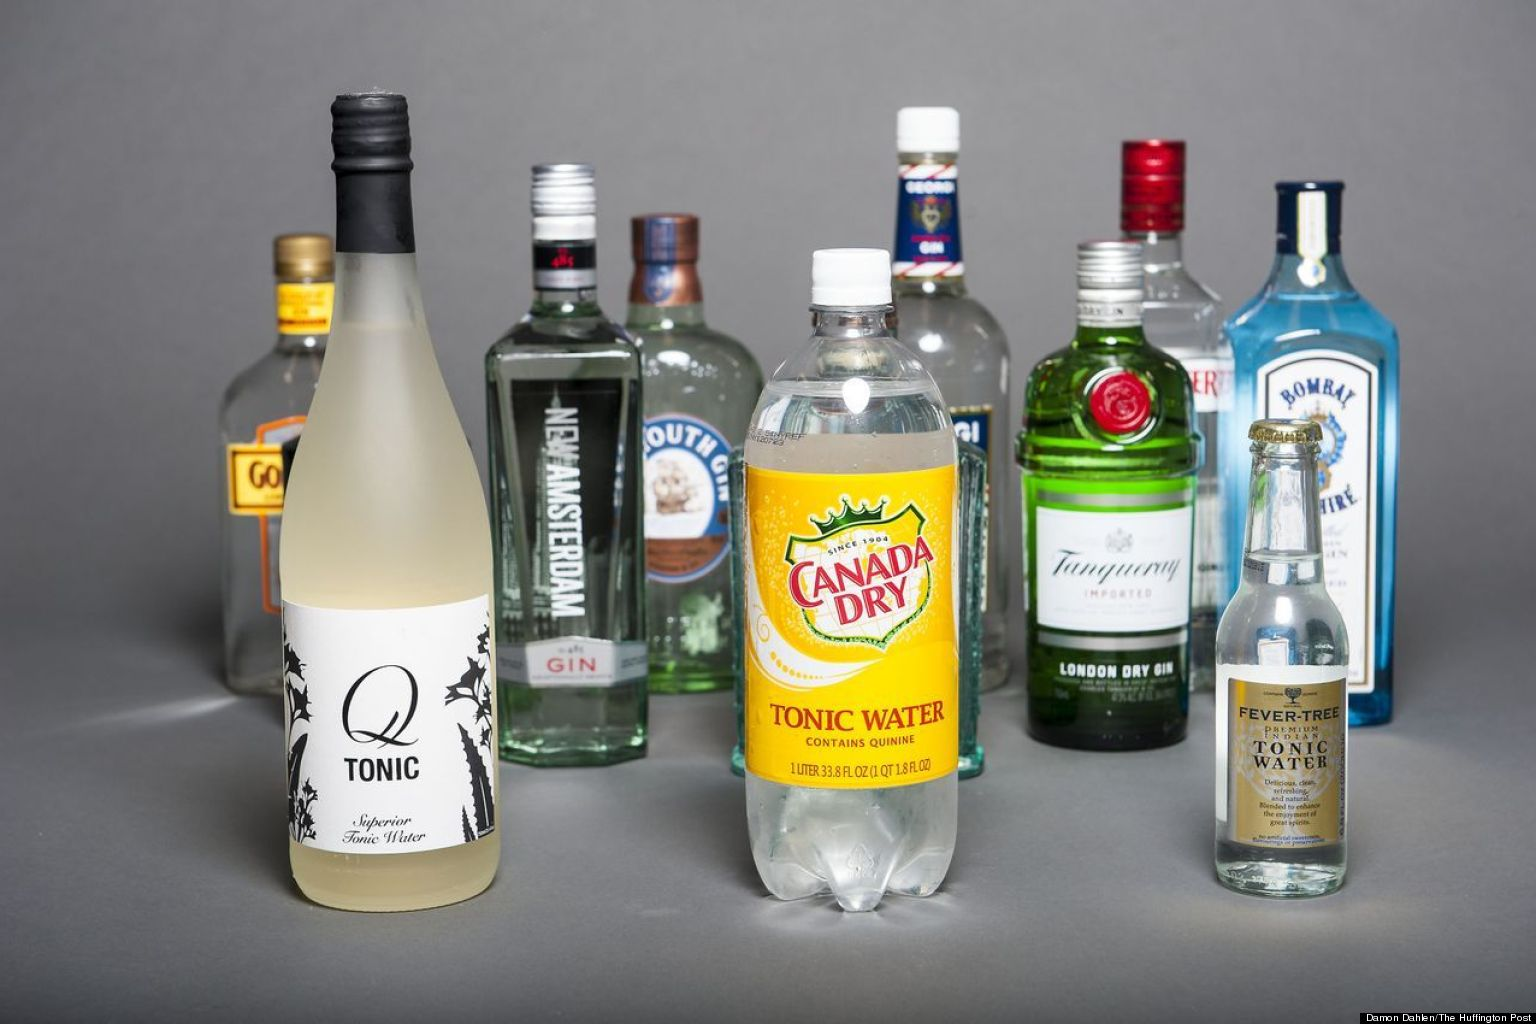 What are some top-rated brands of gin?